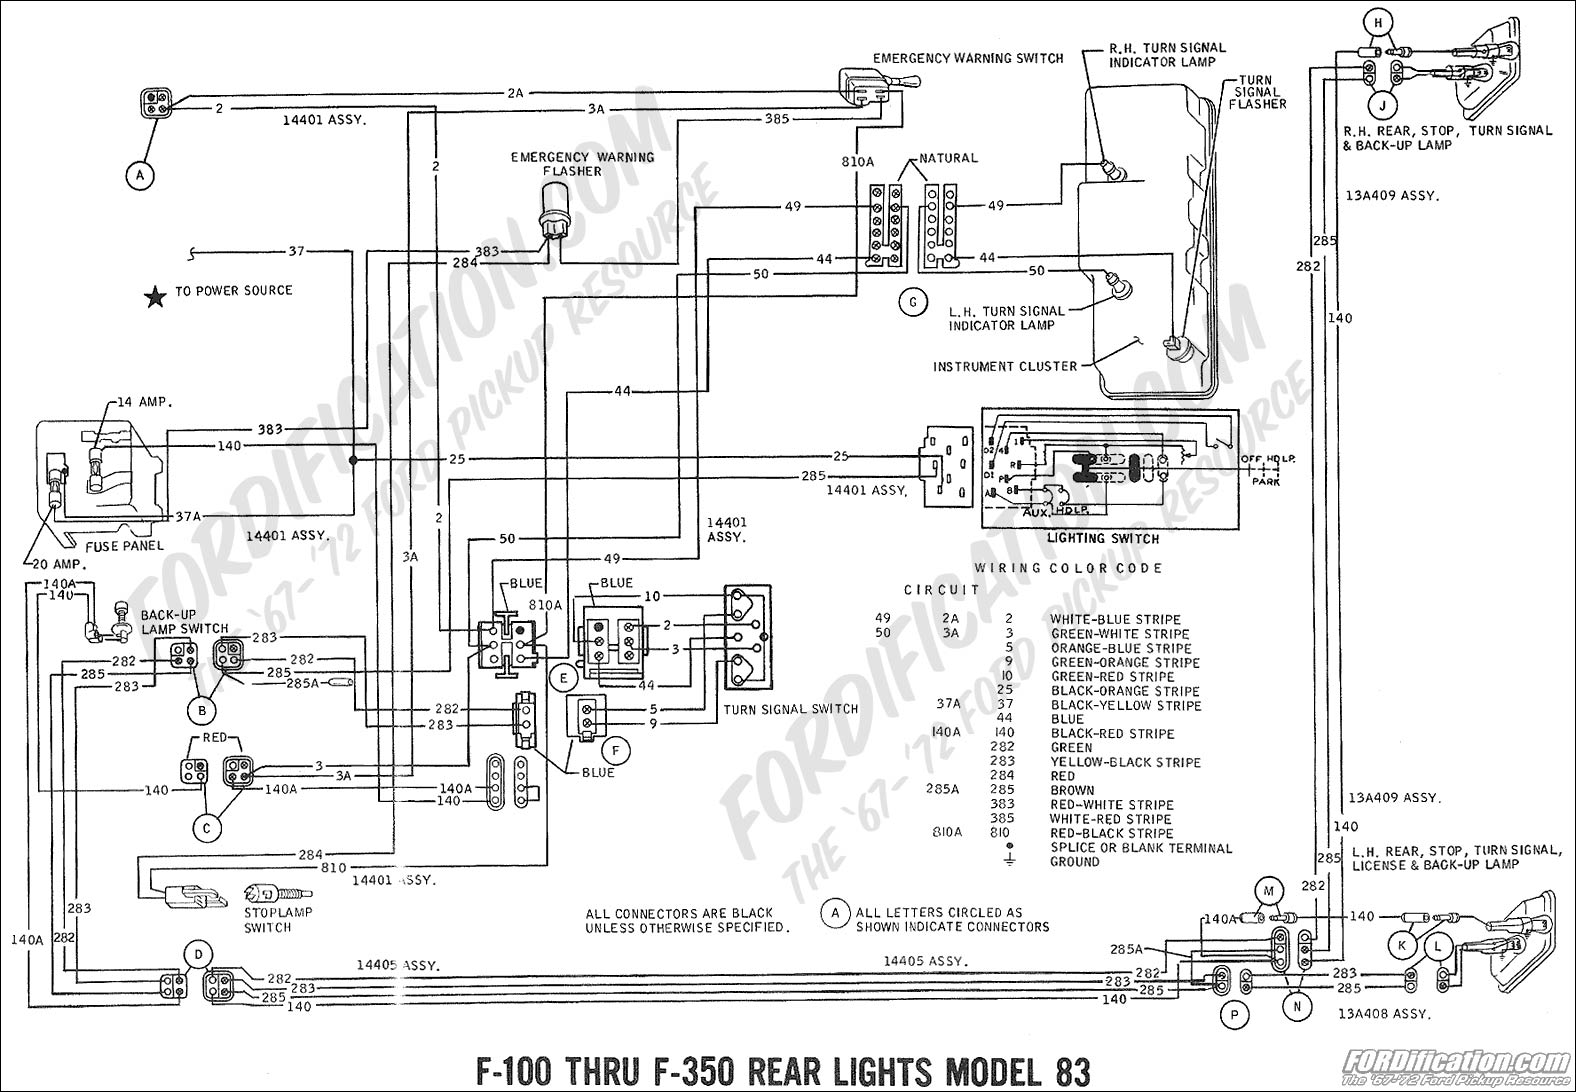 1969 F100 Ignition Diagram Electrical Wiring House 1970 Ford Truck Technical Drawings And Schematics Section H Rh Fordification Com 1968